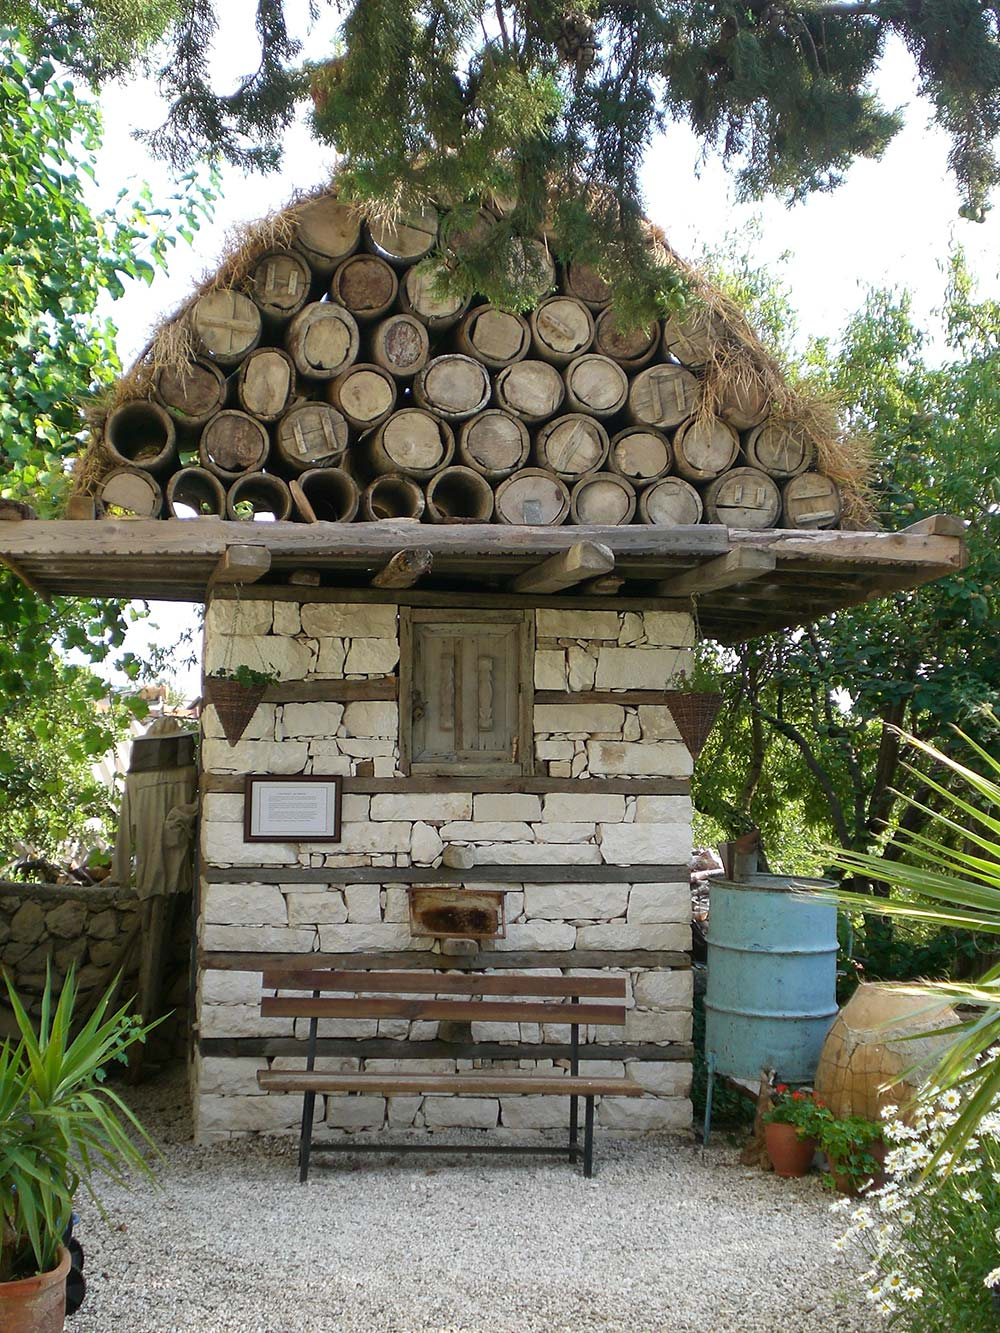 Lycian Beehive at Hotel Patara Viewpoint